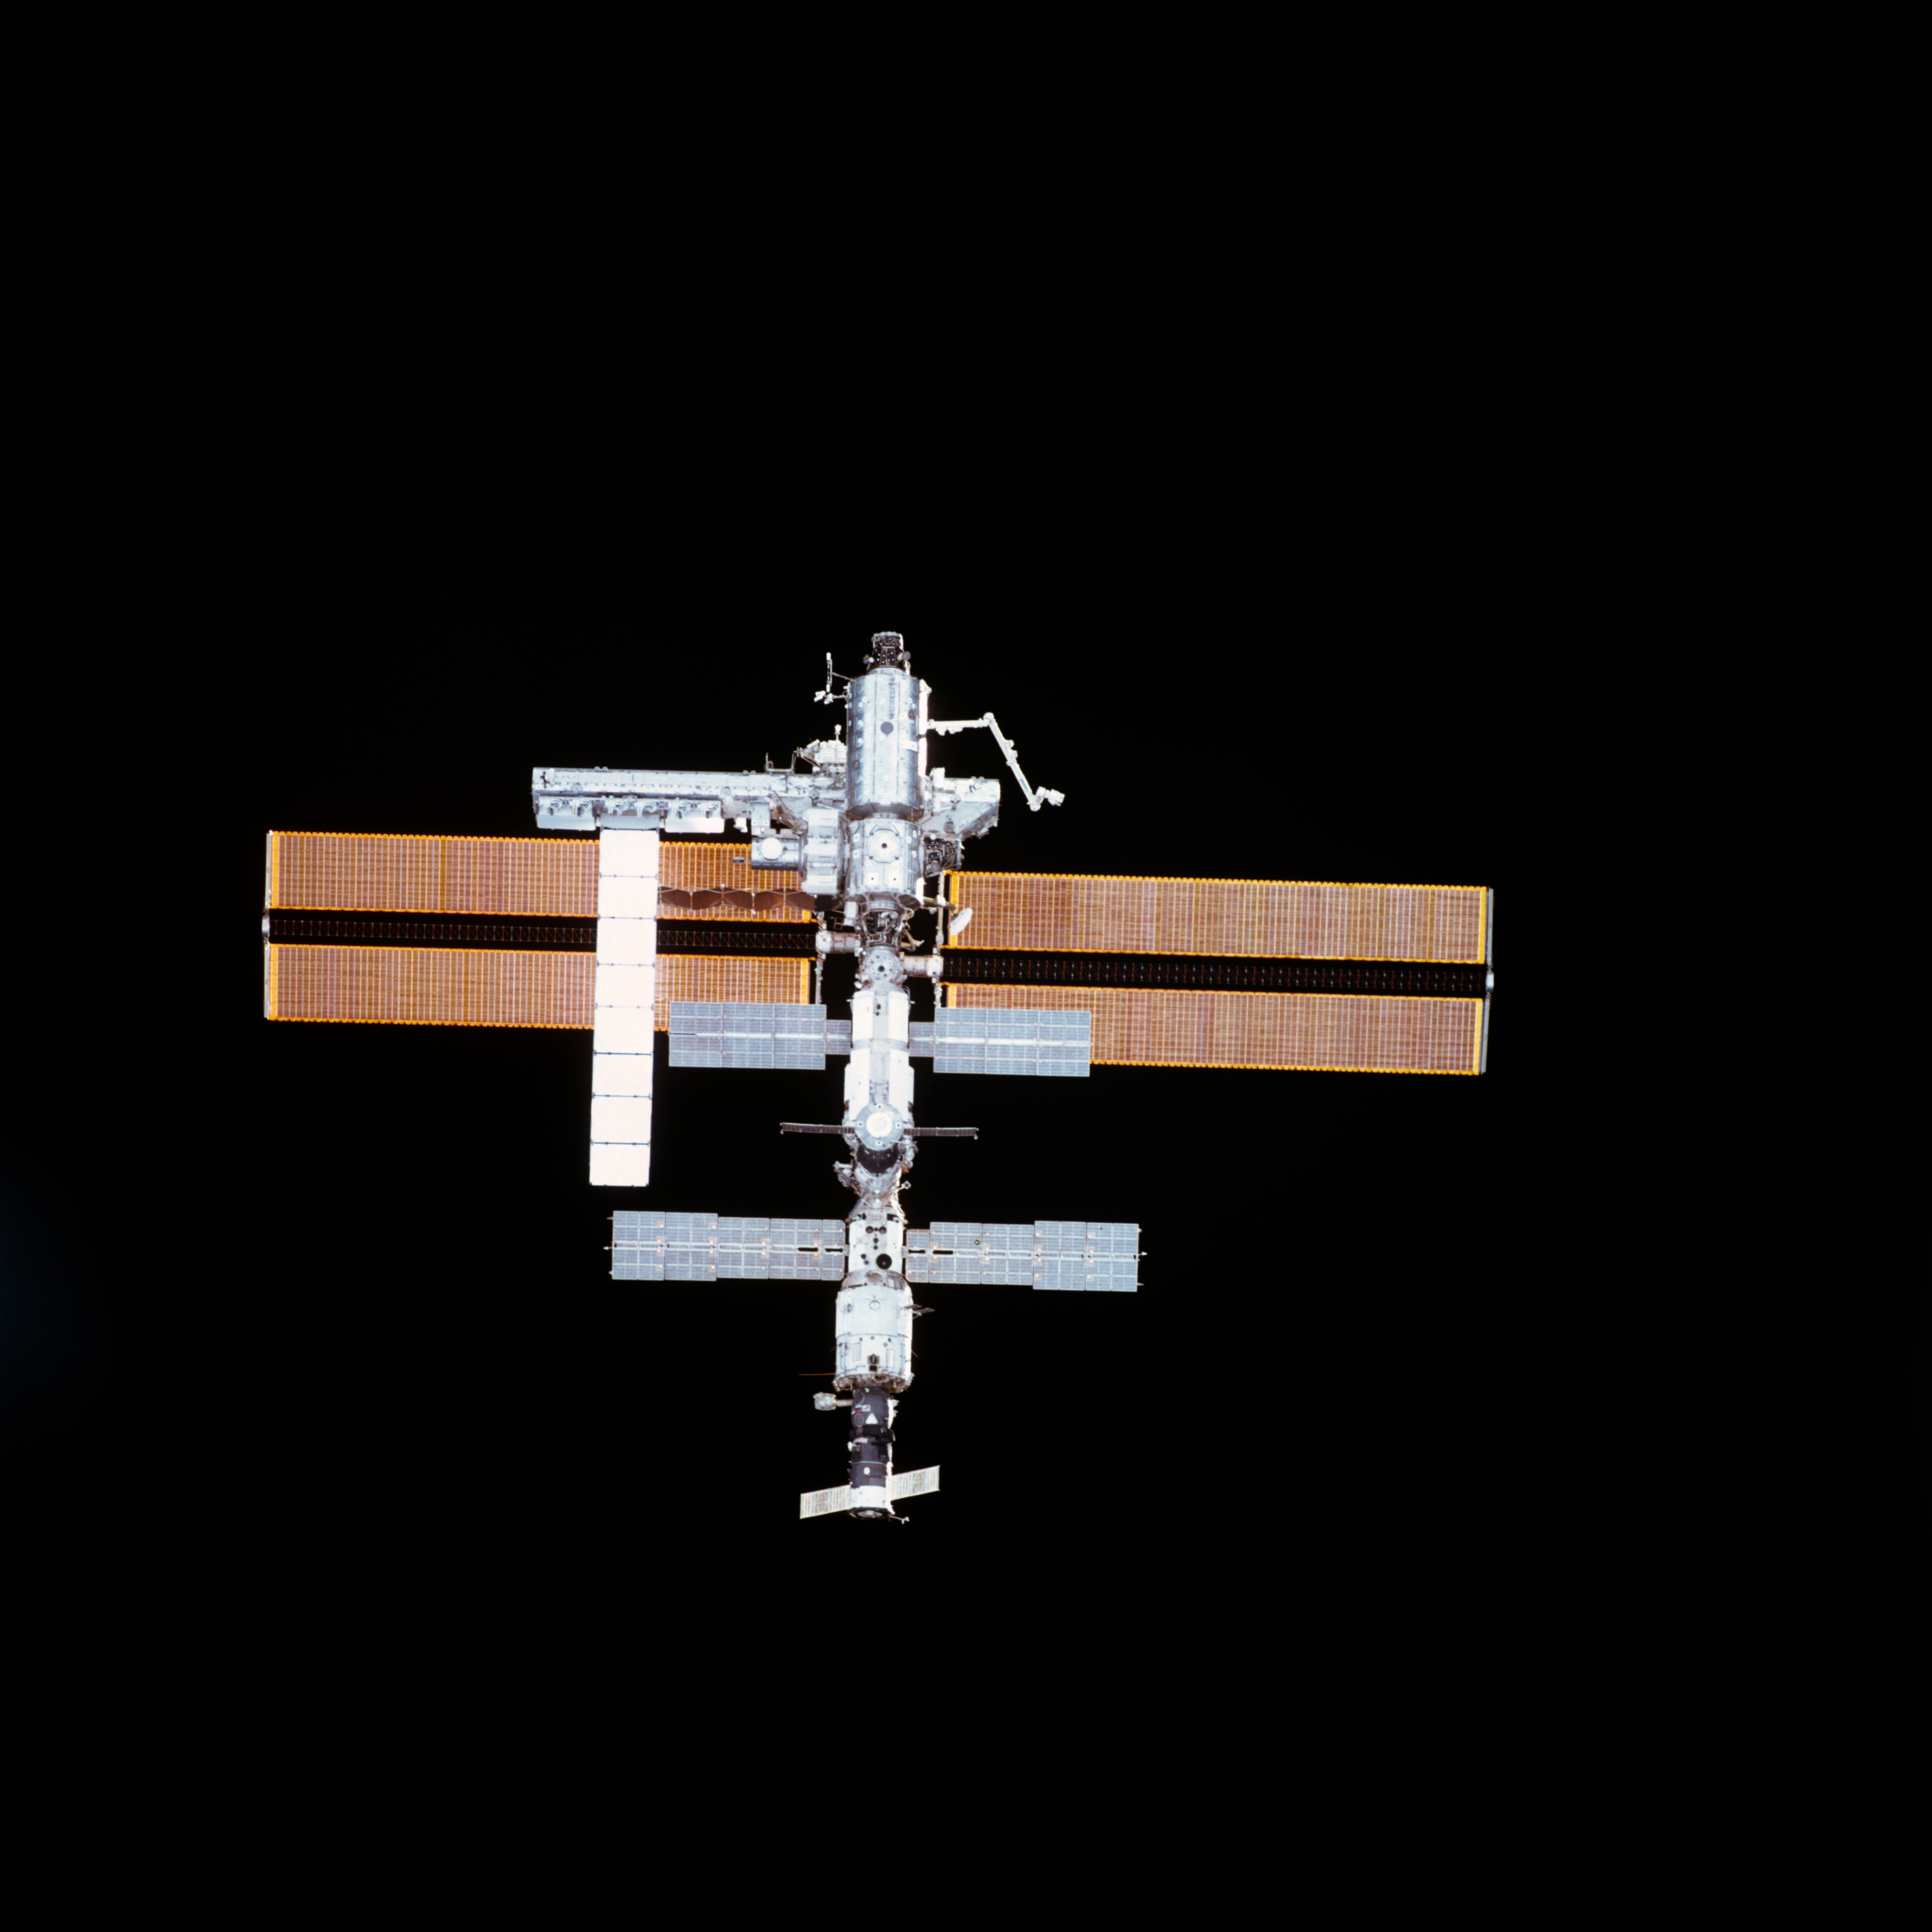 Zenith views of the ISS taken ...